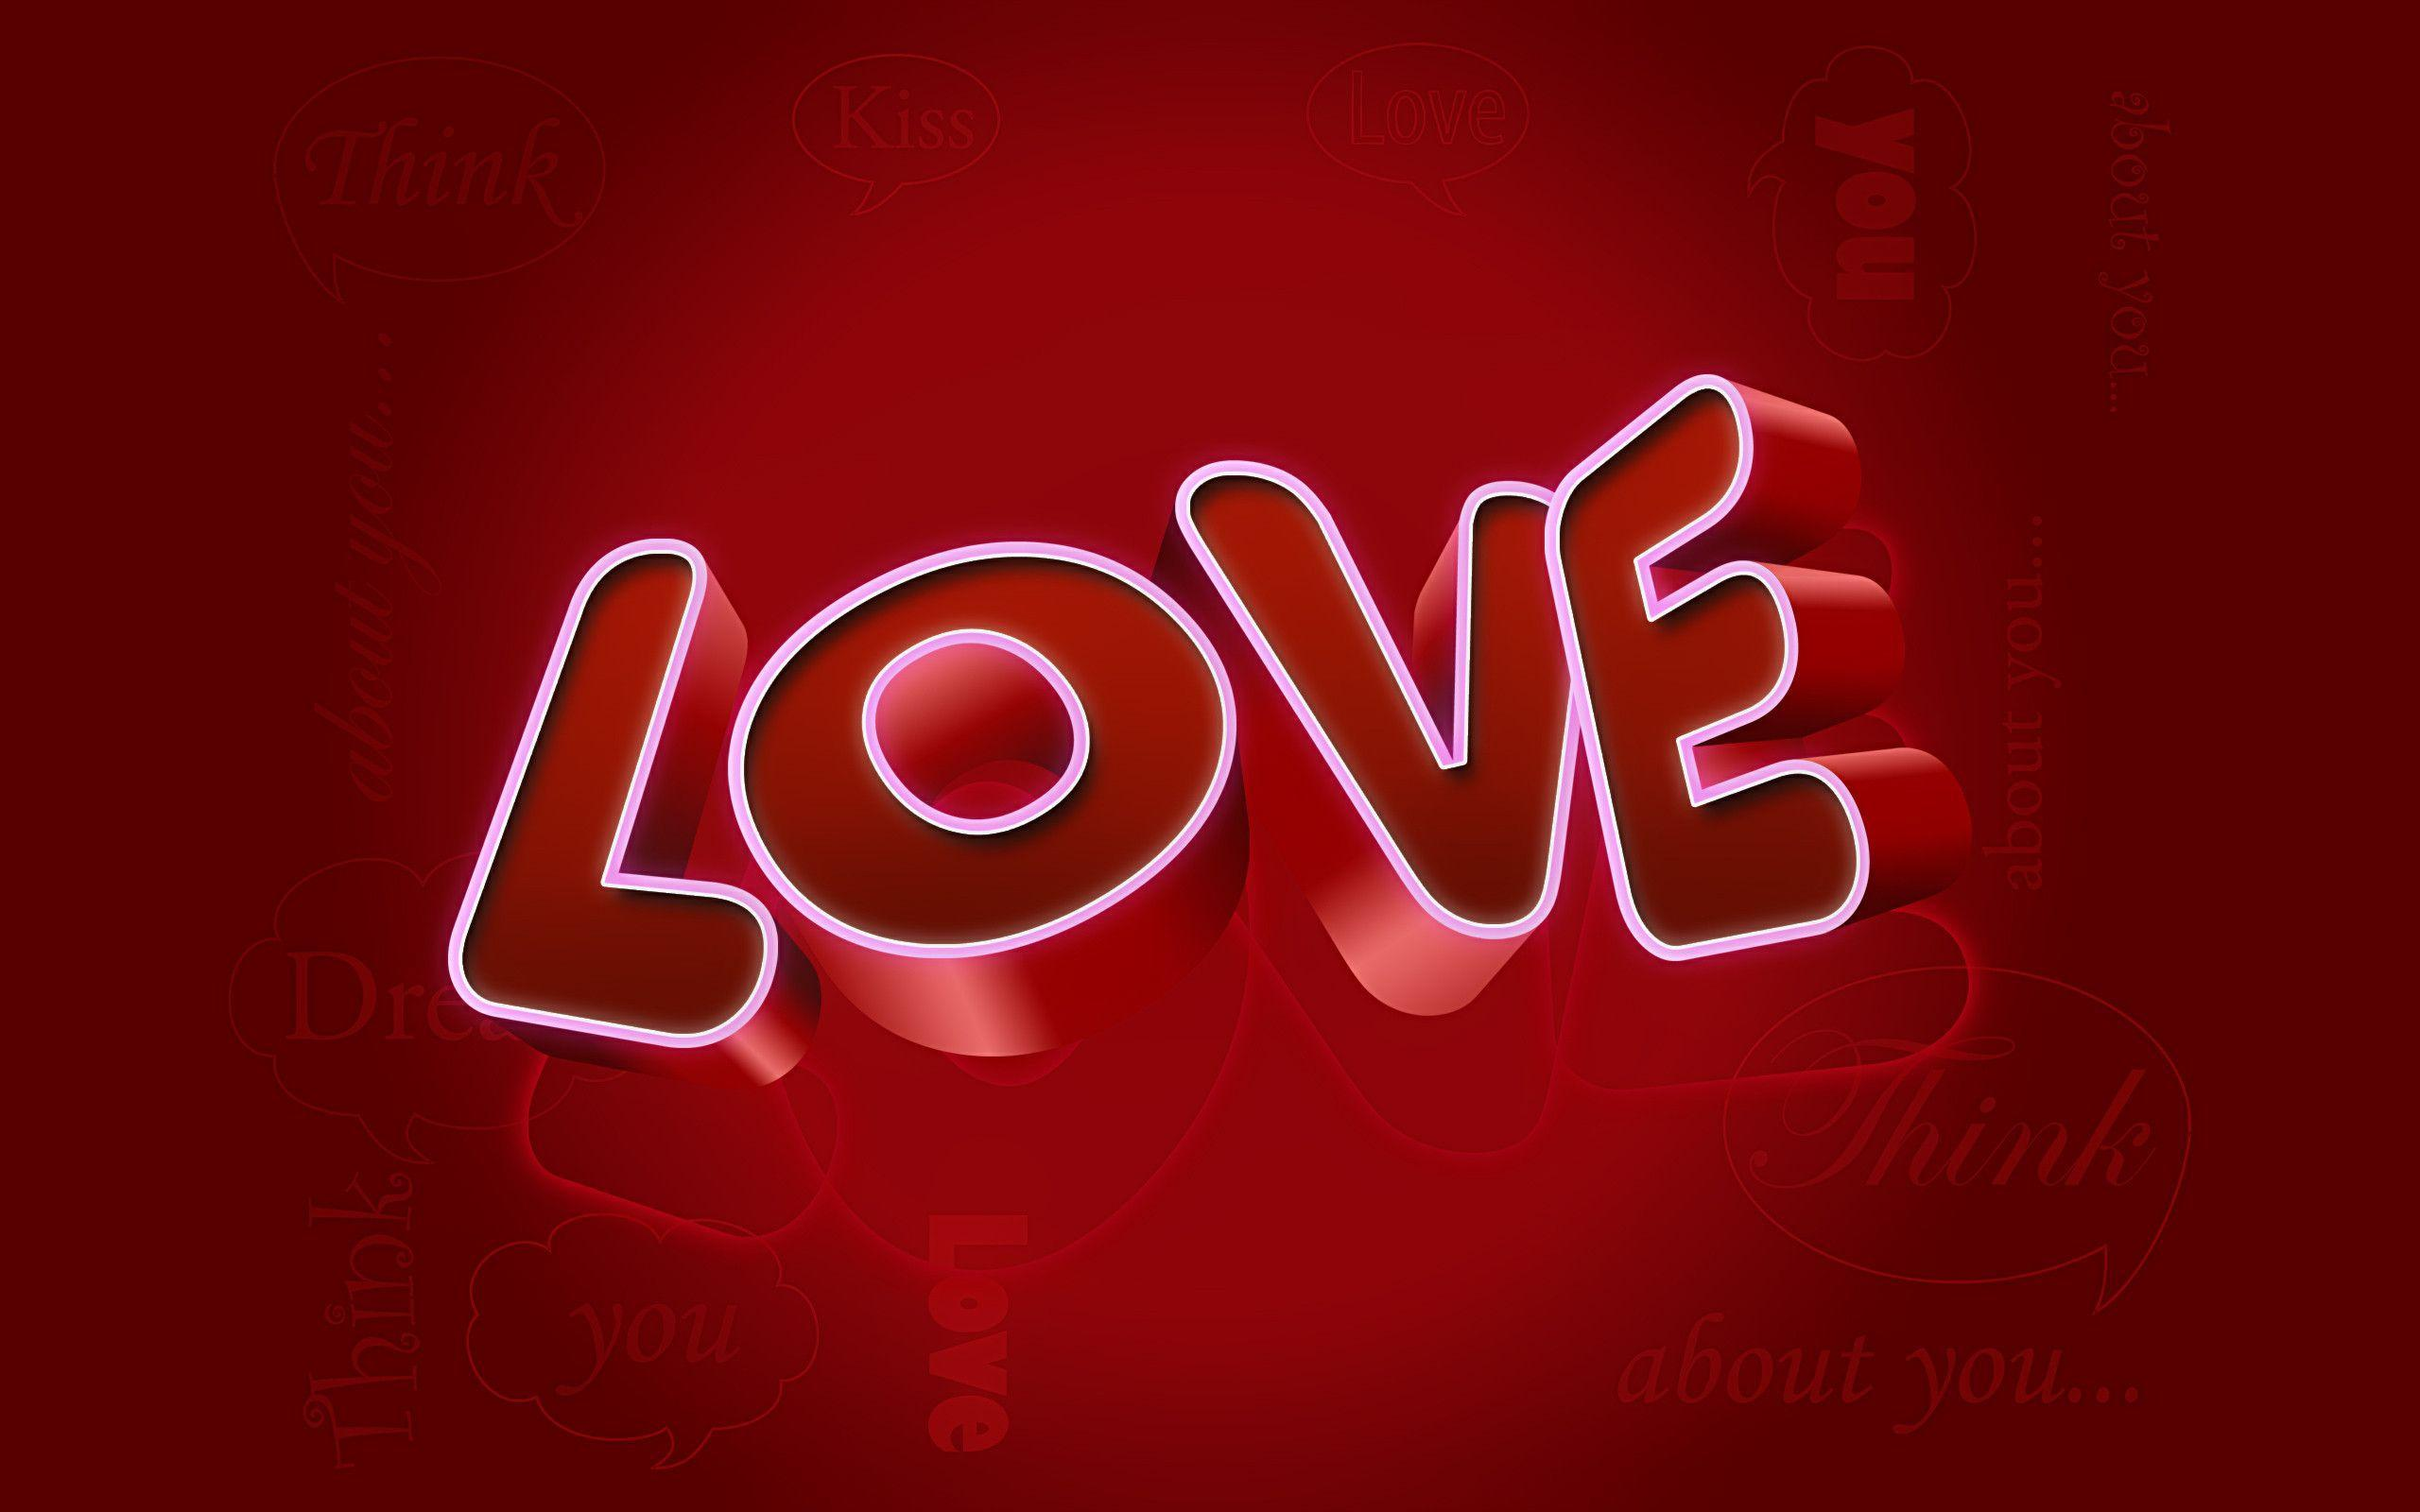 Love Images Hd And 3d : Love Wallpapers 3D - Wallpaper cave